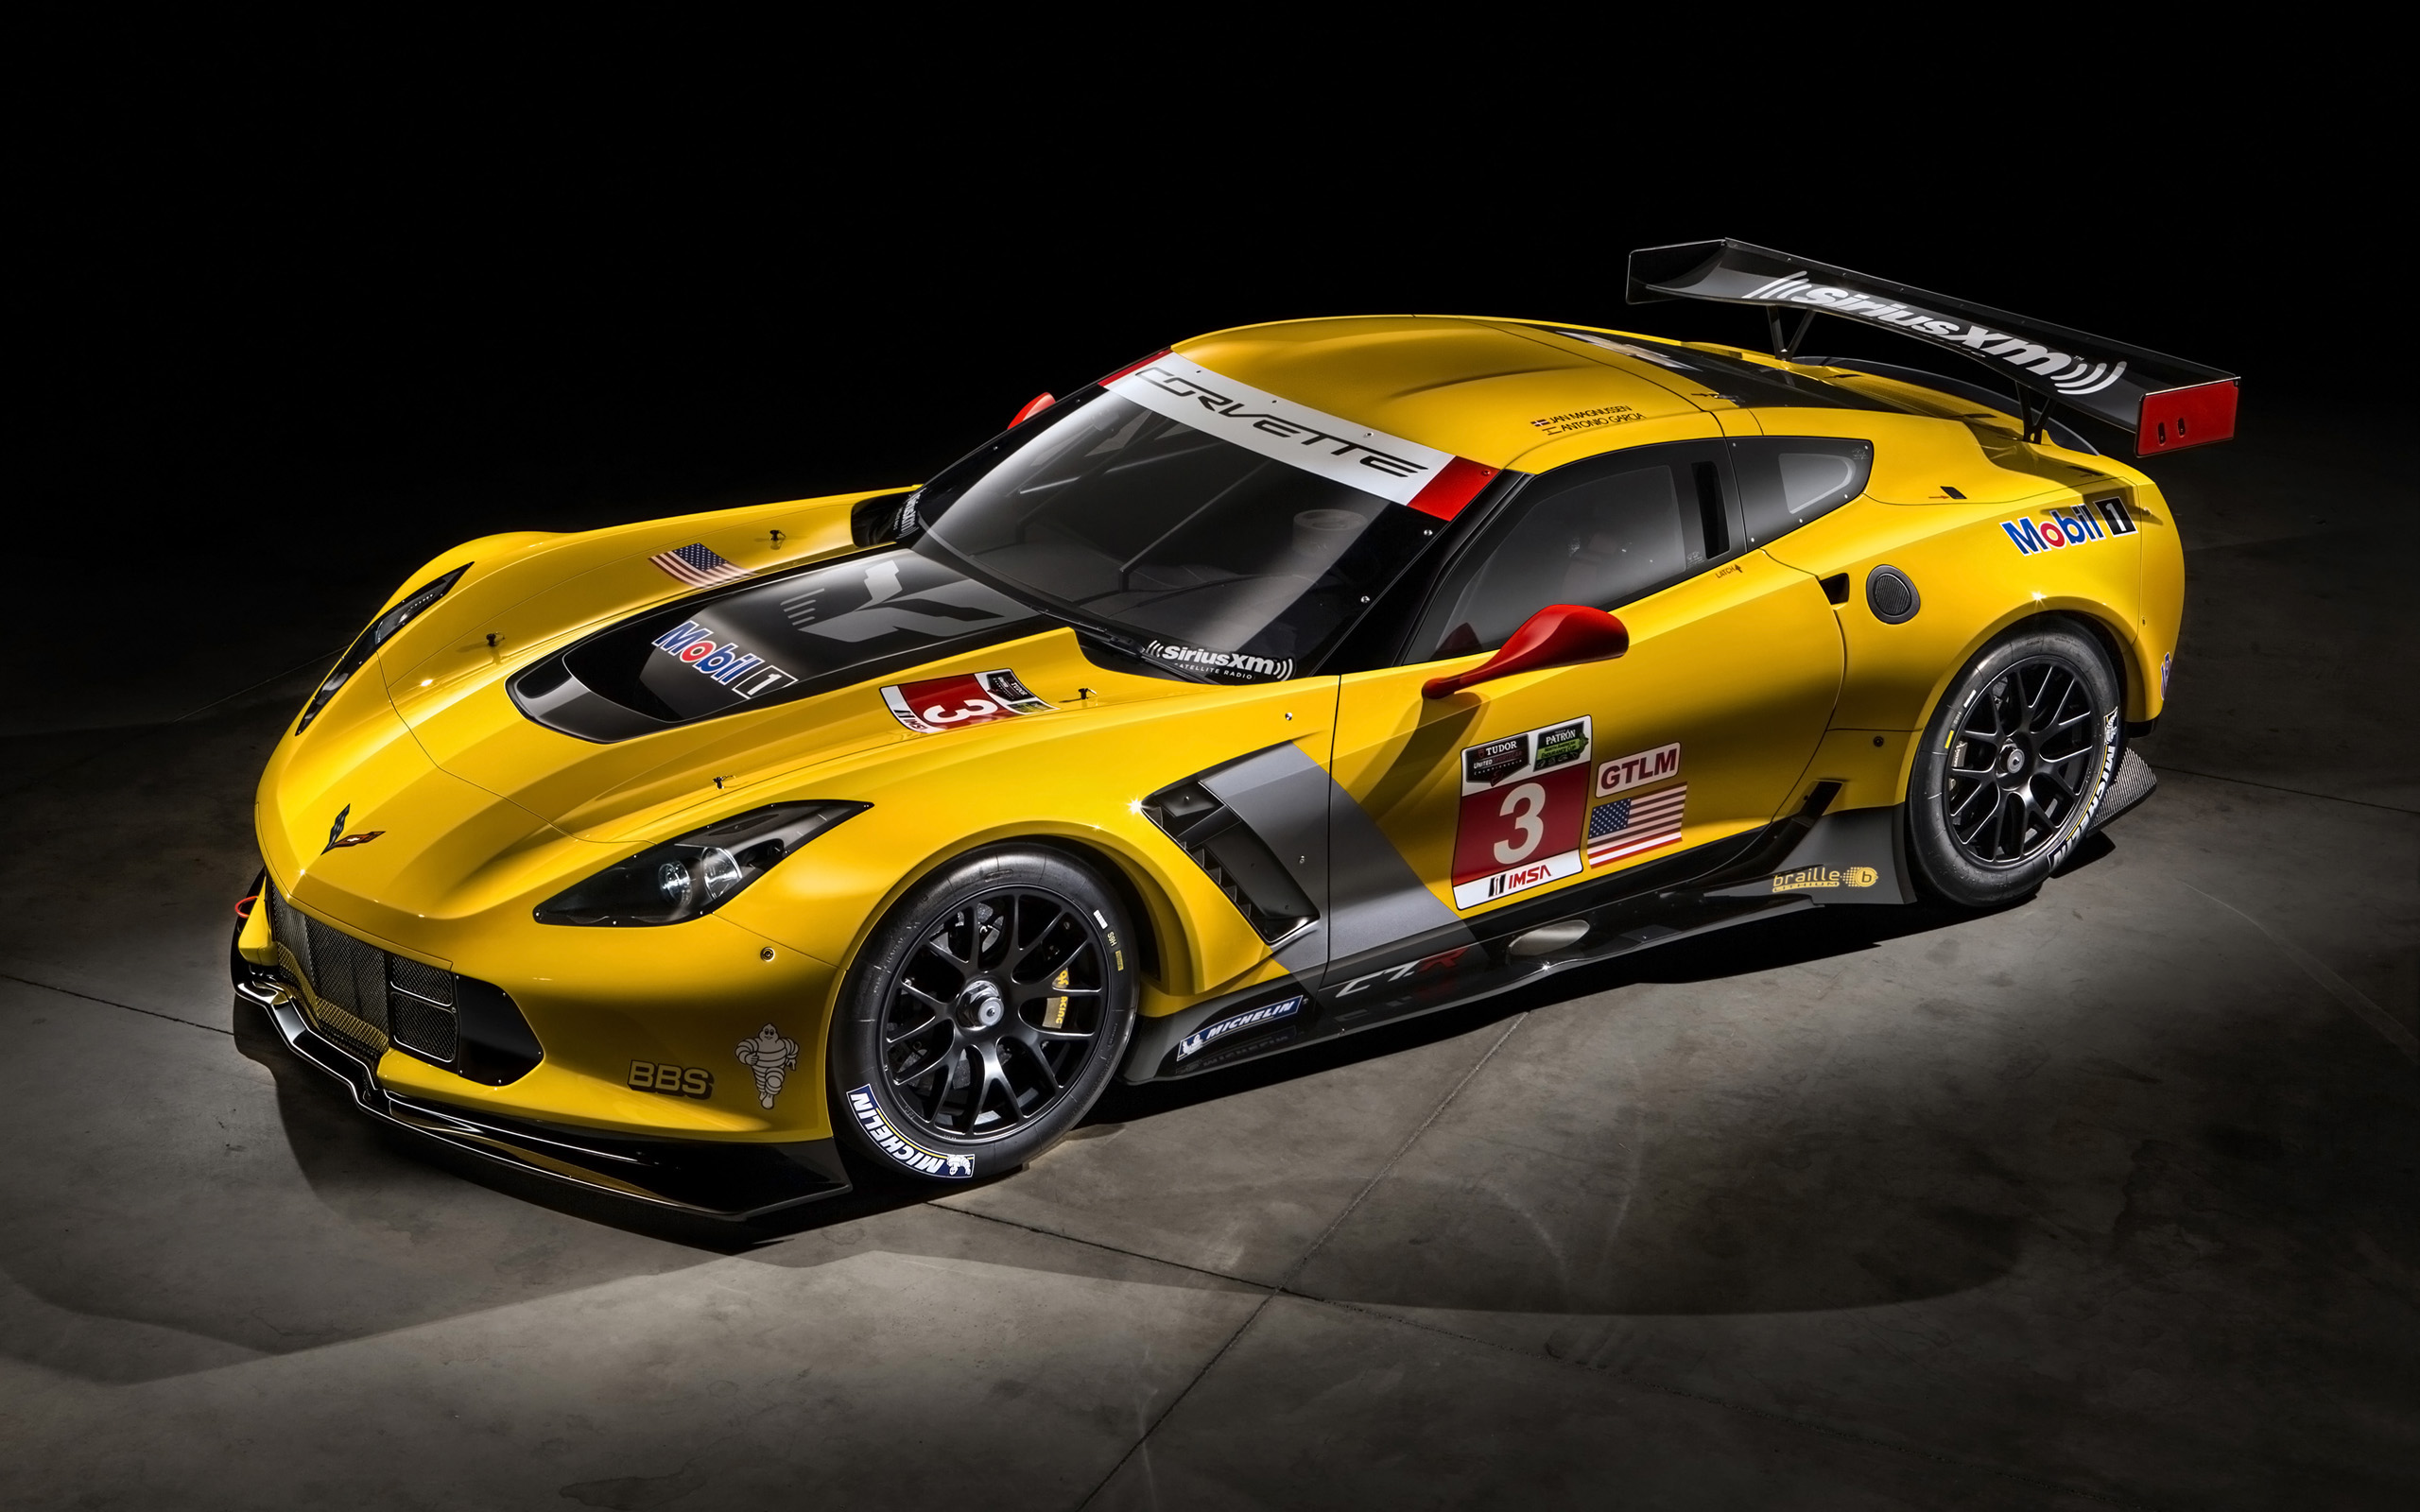 Chevrolet Corvette C7 R 2014 Wallpaper HD Car Wallpapers 2560x1600